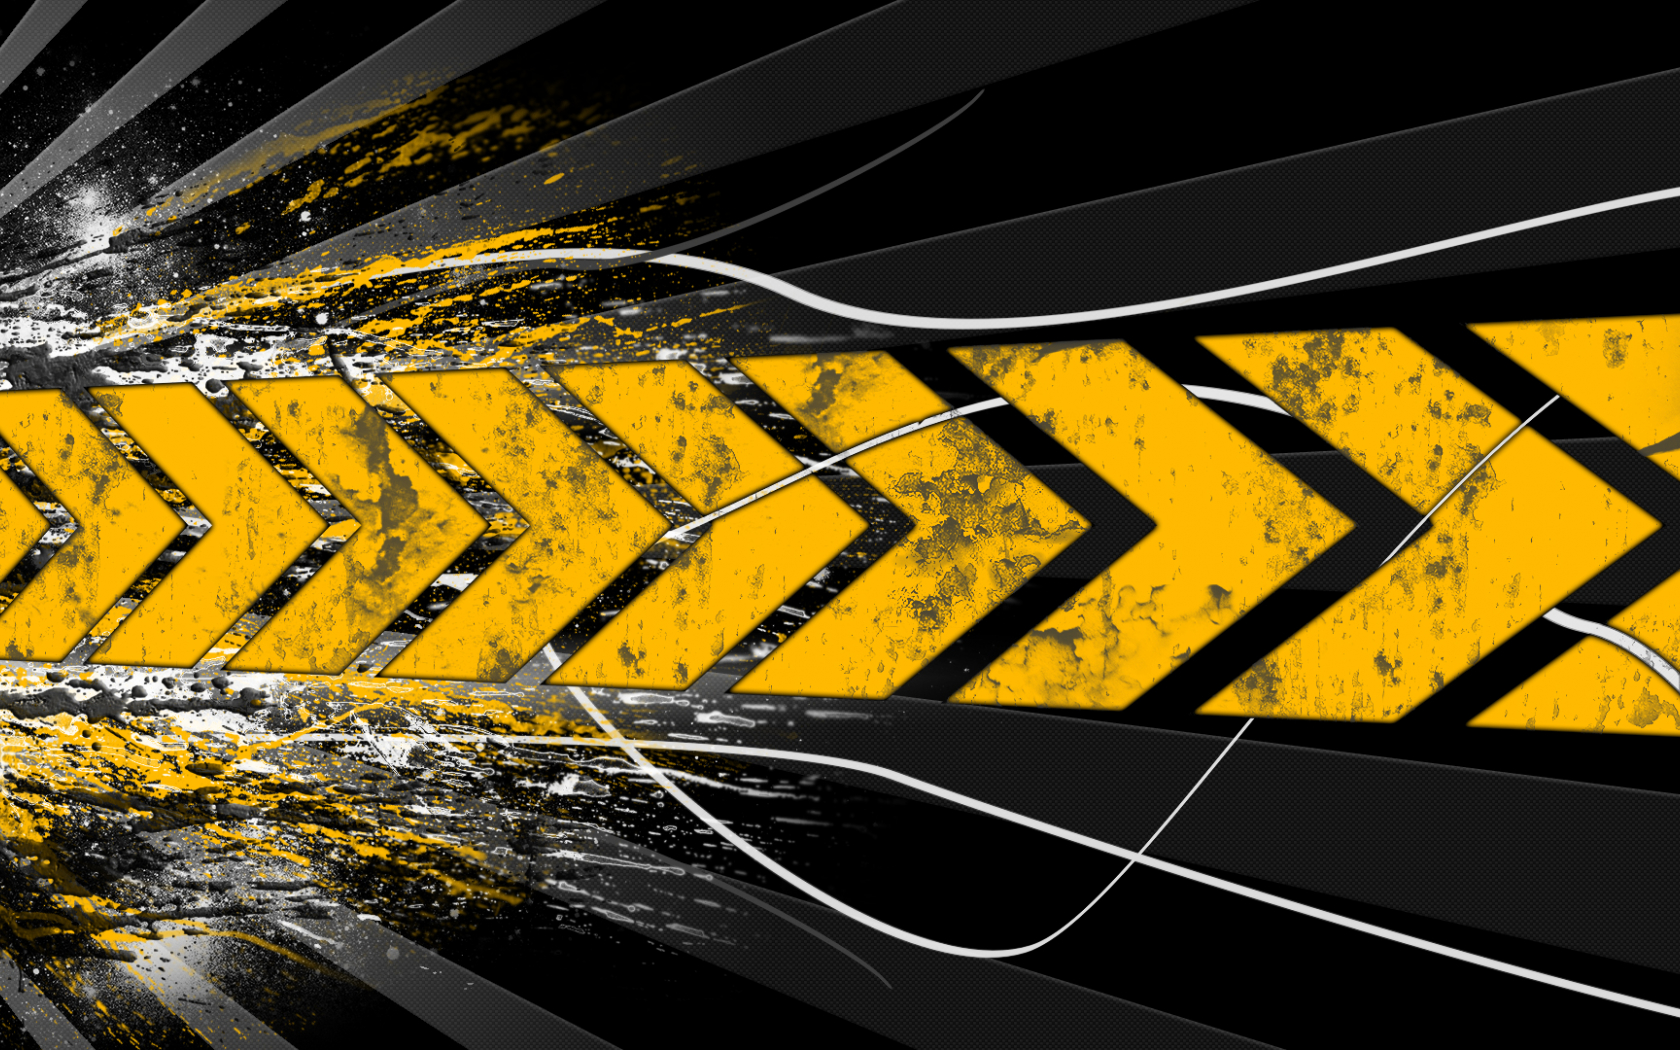 Free Download Black And Yellow Abstract Hd Black Yellow Art Wallpaper 1920x1080 For Your Desktop Mobile Tablet Explore 48 Black And Yellow Hd Wallpaper Black And Yellow Hd Wallpaper